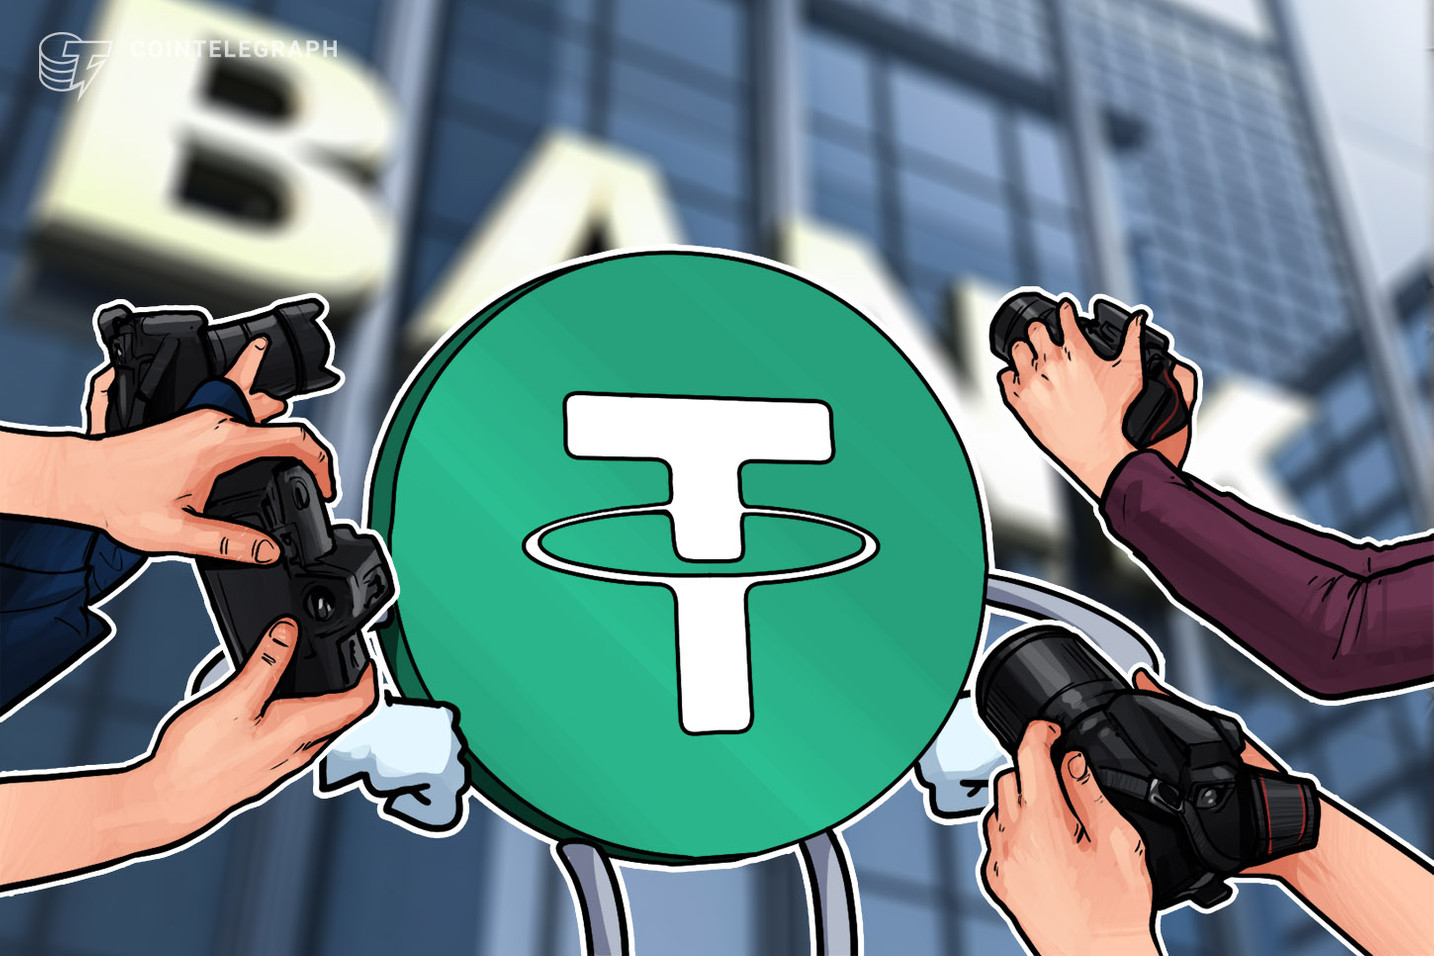 Controversial Stablecoin Tether Confirms New Banking Partner Deltec After Weeks of Rumors